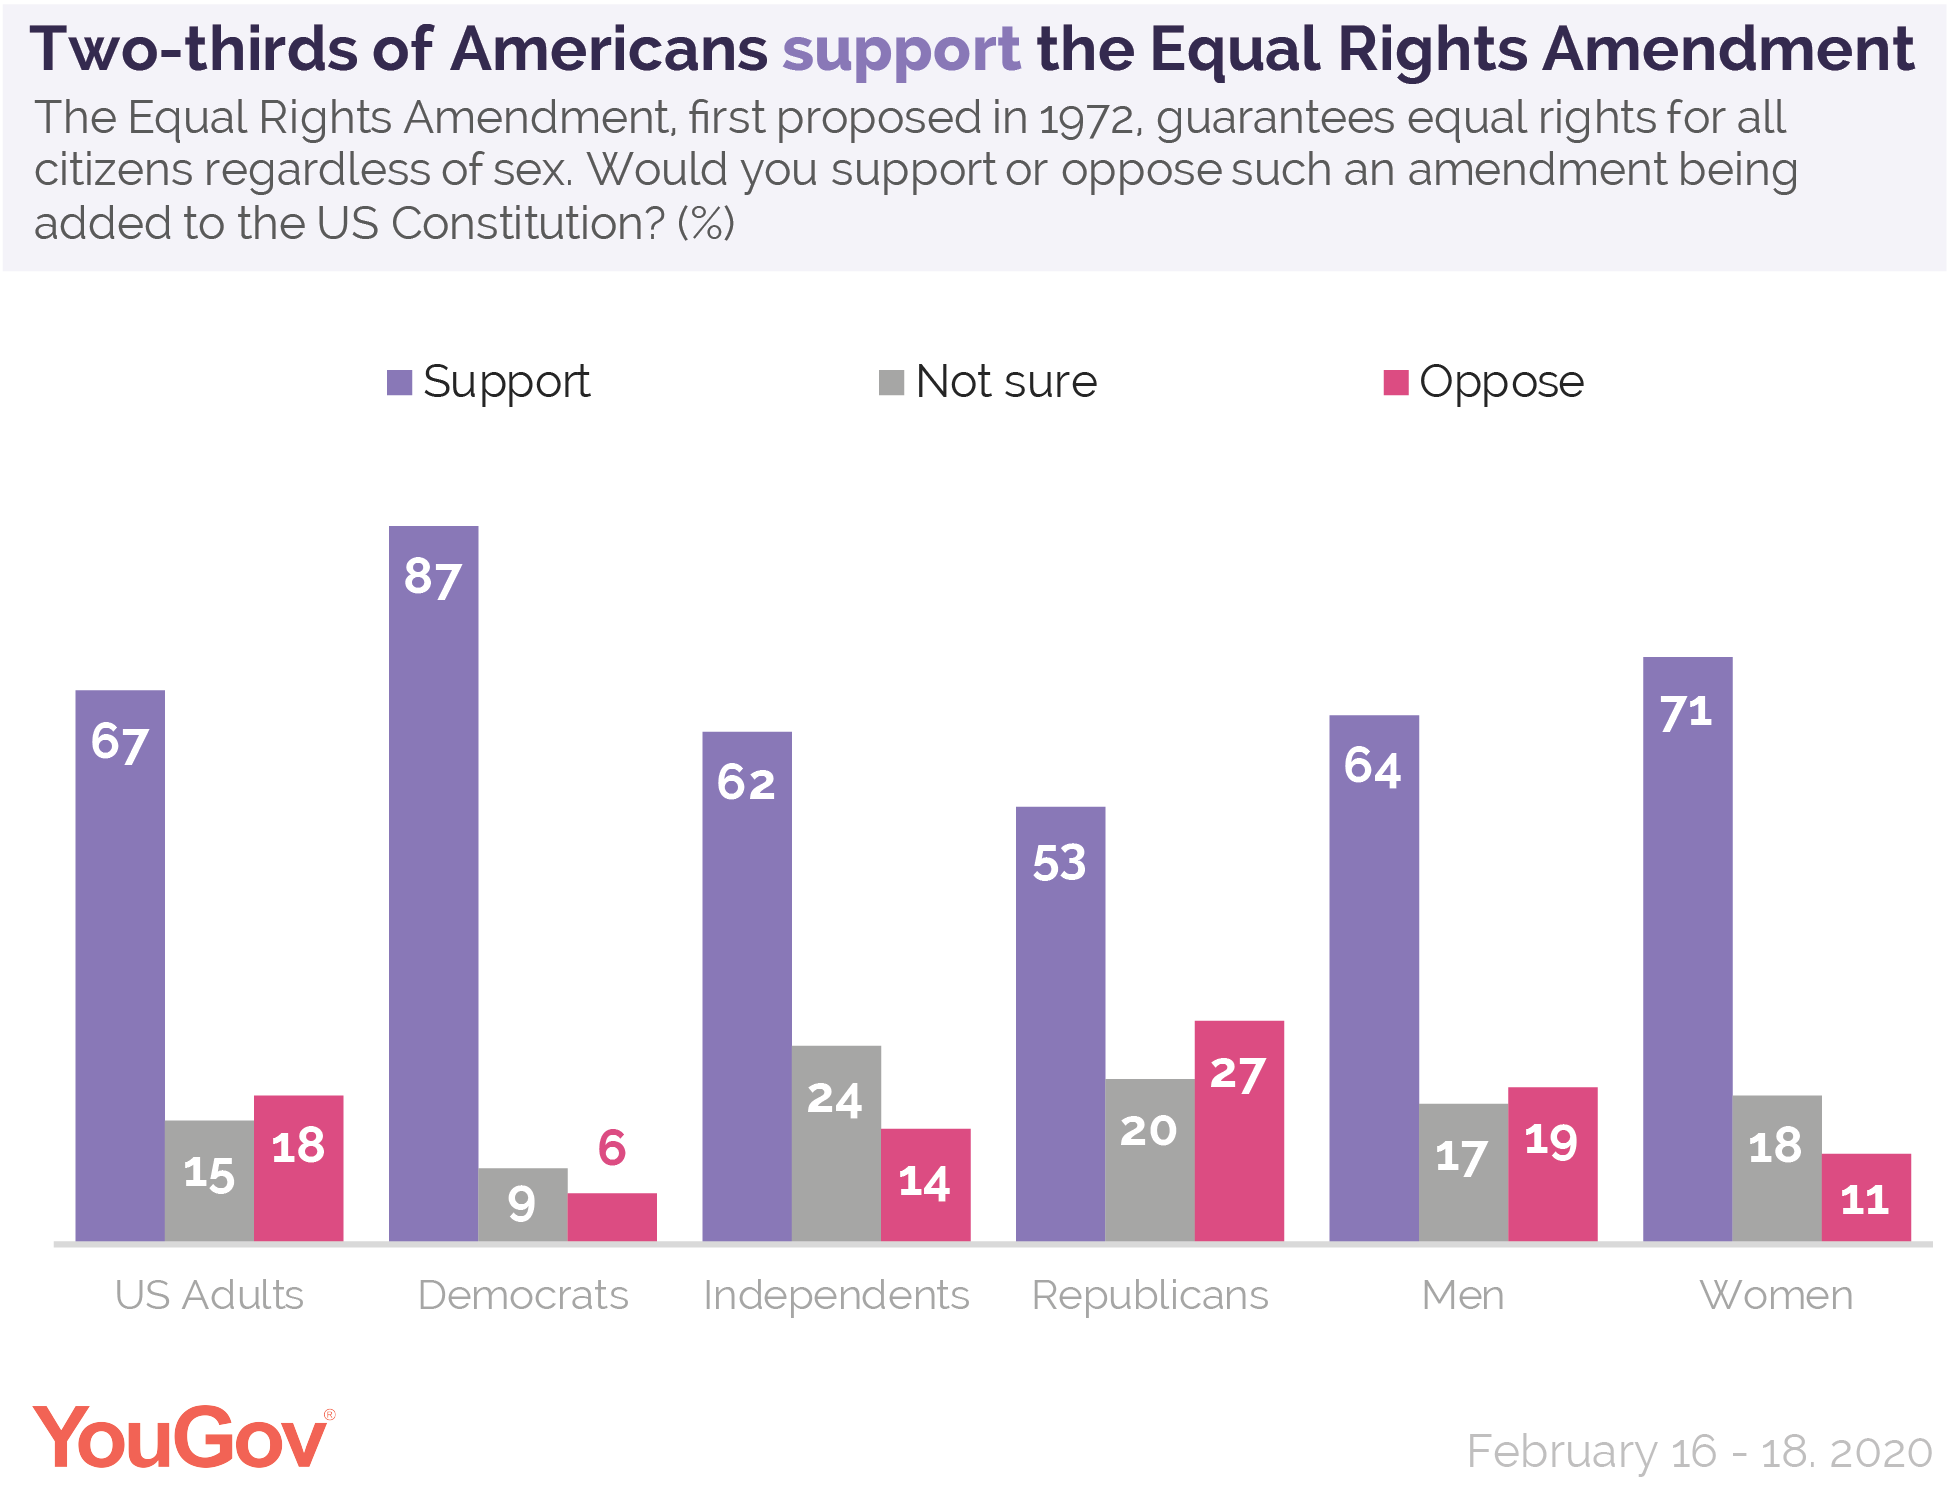 Two-thirds of Americans support the Equal Rights Amendment